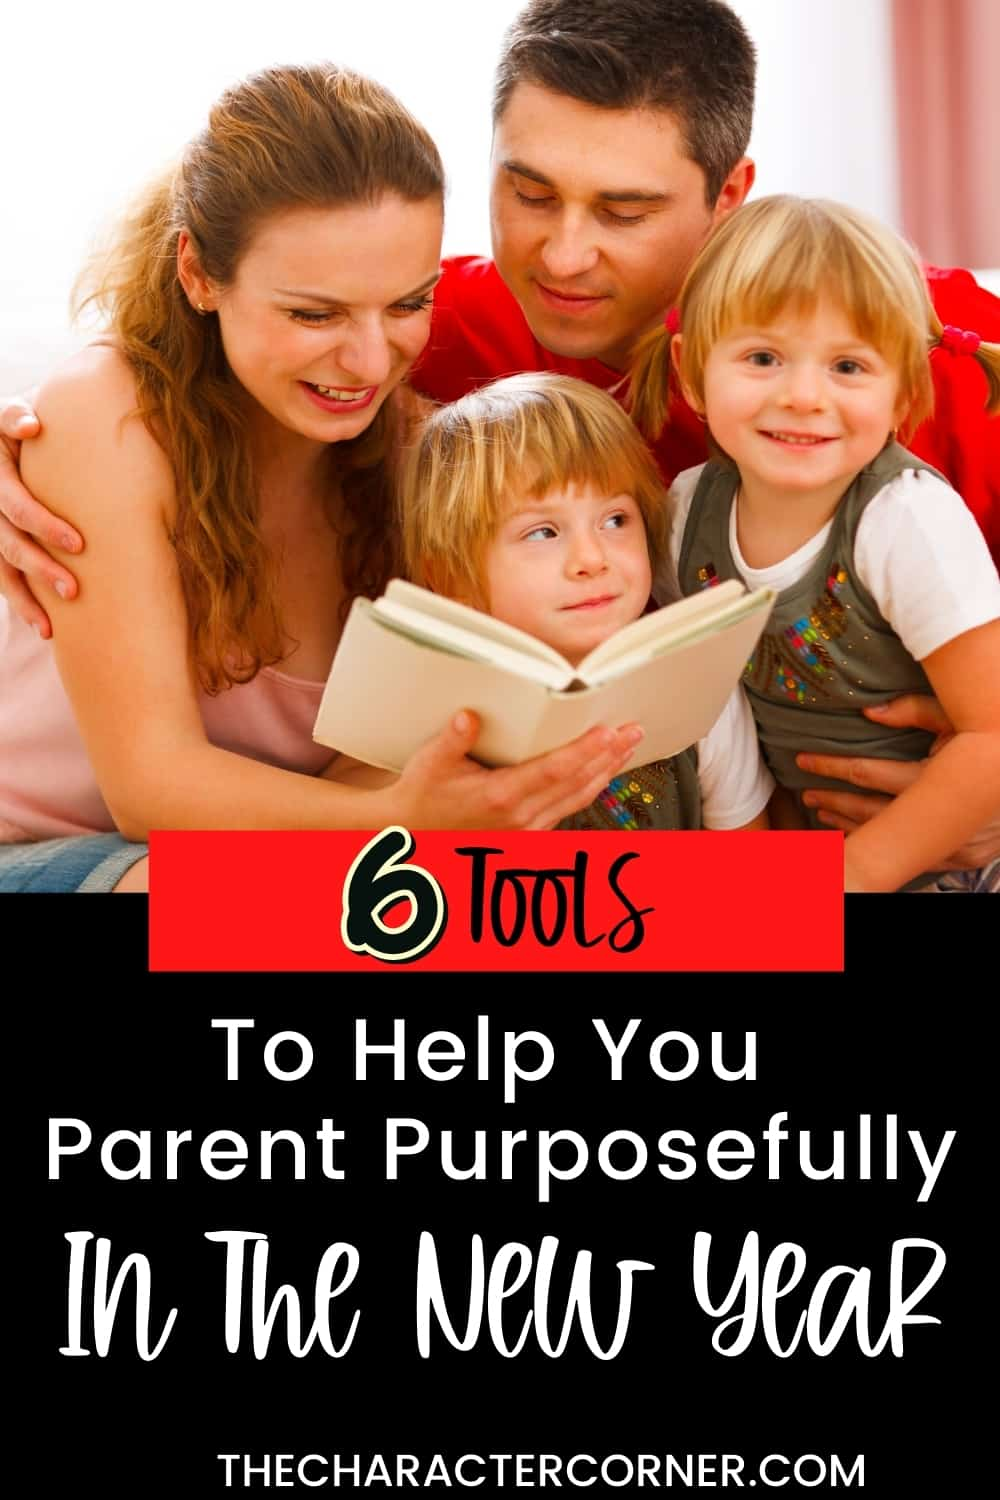 Mom Dad and two toddlers reading together Text on image reads: 6 Tools to help you parent purposefully in the new year